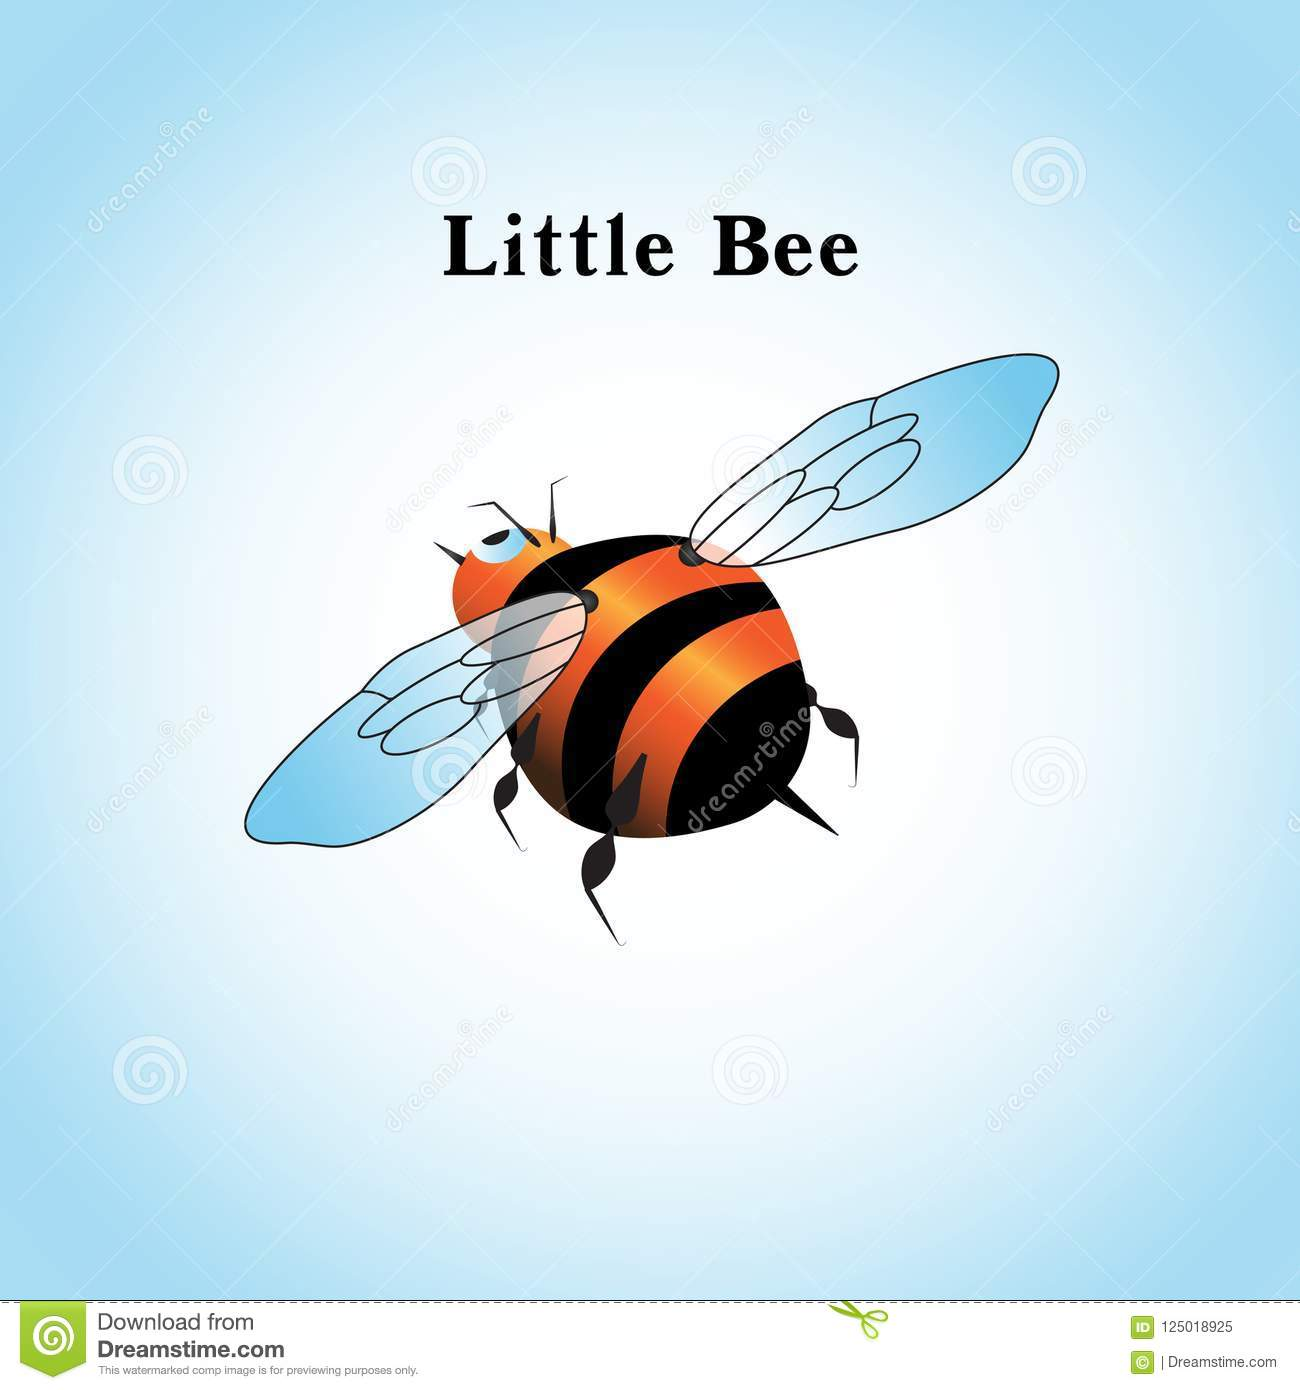 Vector illustration of a little bee flying in the sky